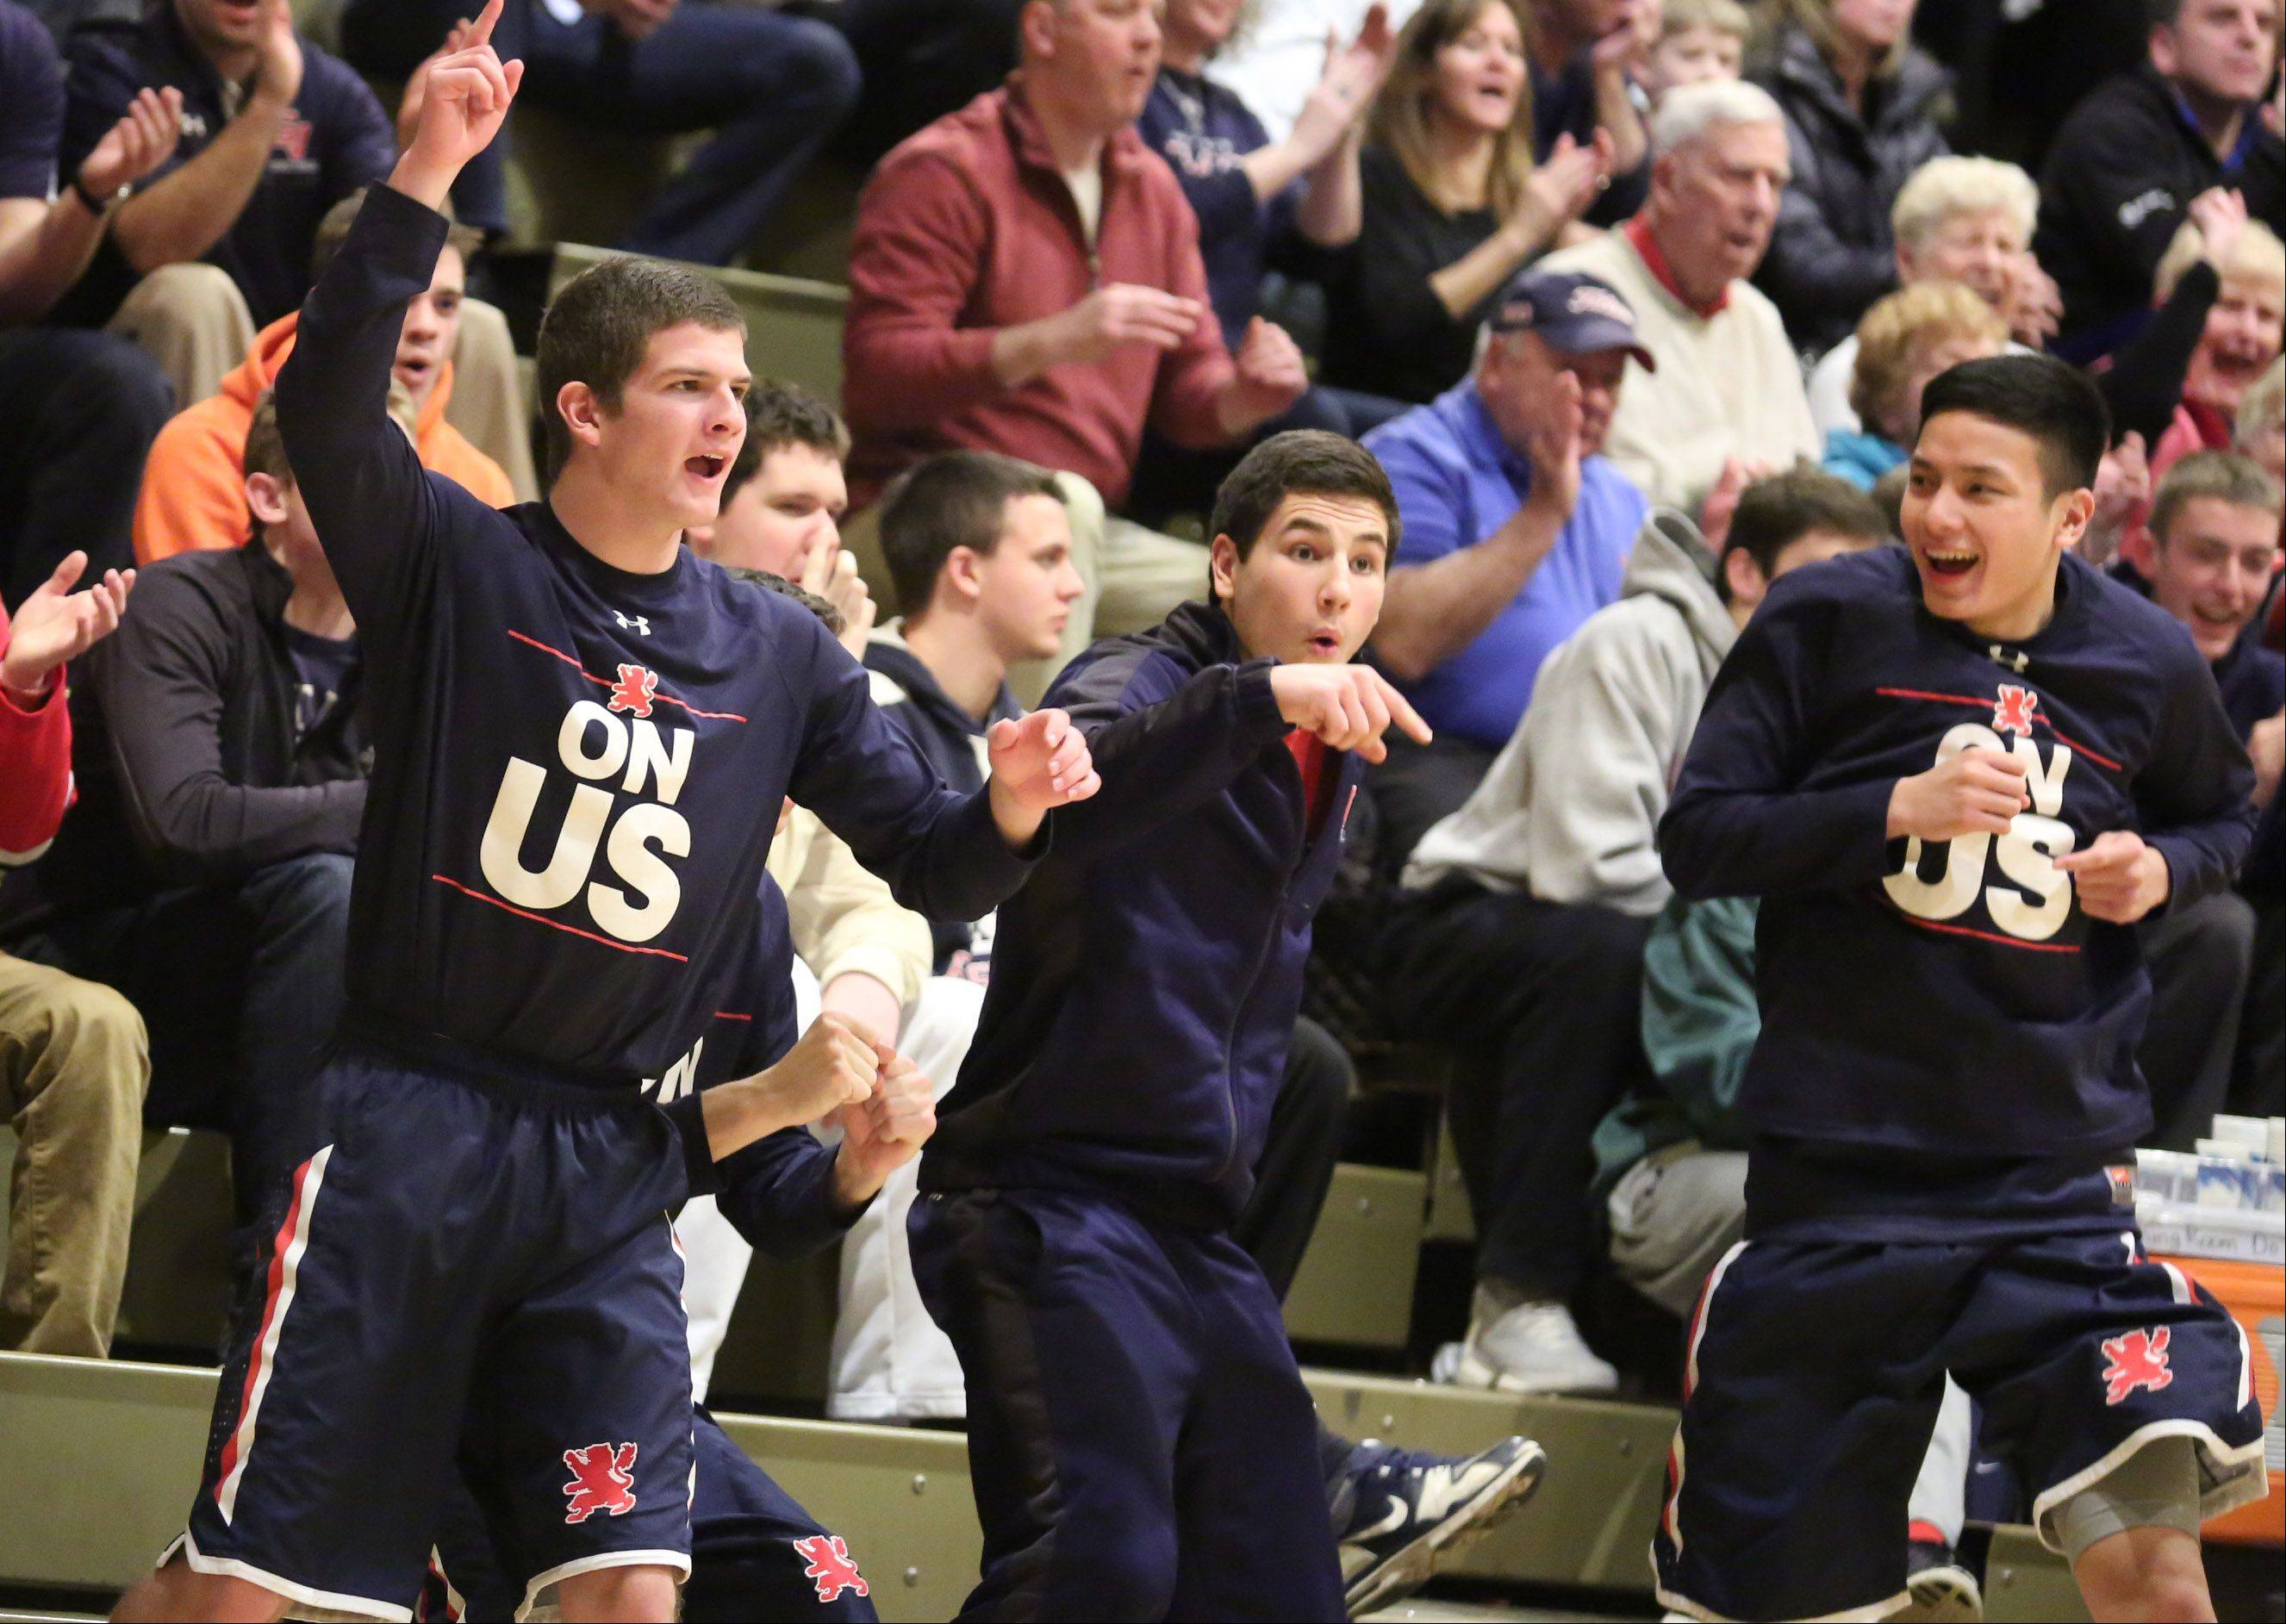 The St. Viator bench celebrates a three-point shot against Prospect at the Wheeling Hardwood Classic on Friday in Wheeling.